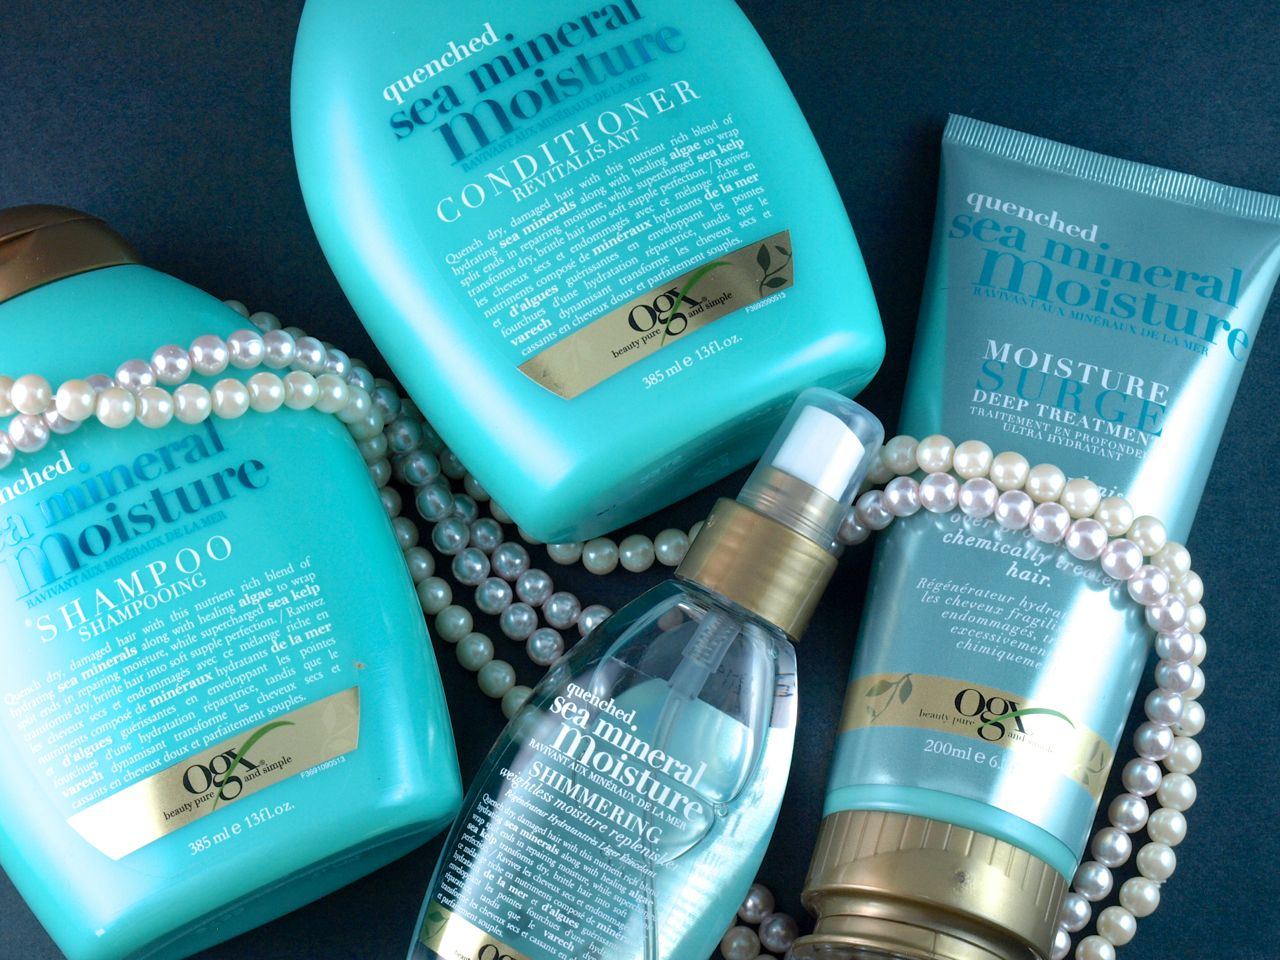 OGX Quenched Sea Mineral Moisture Collection: Review